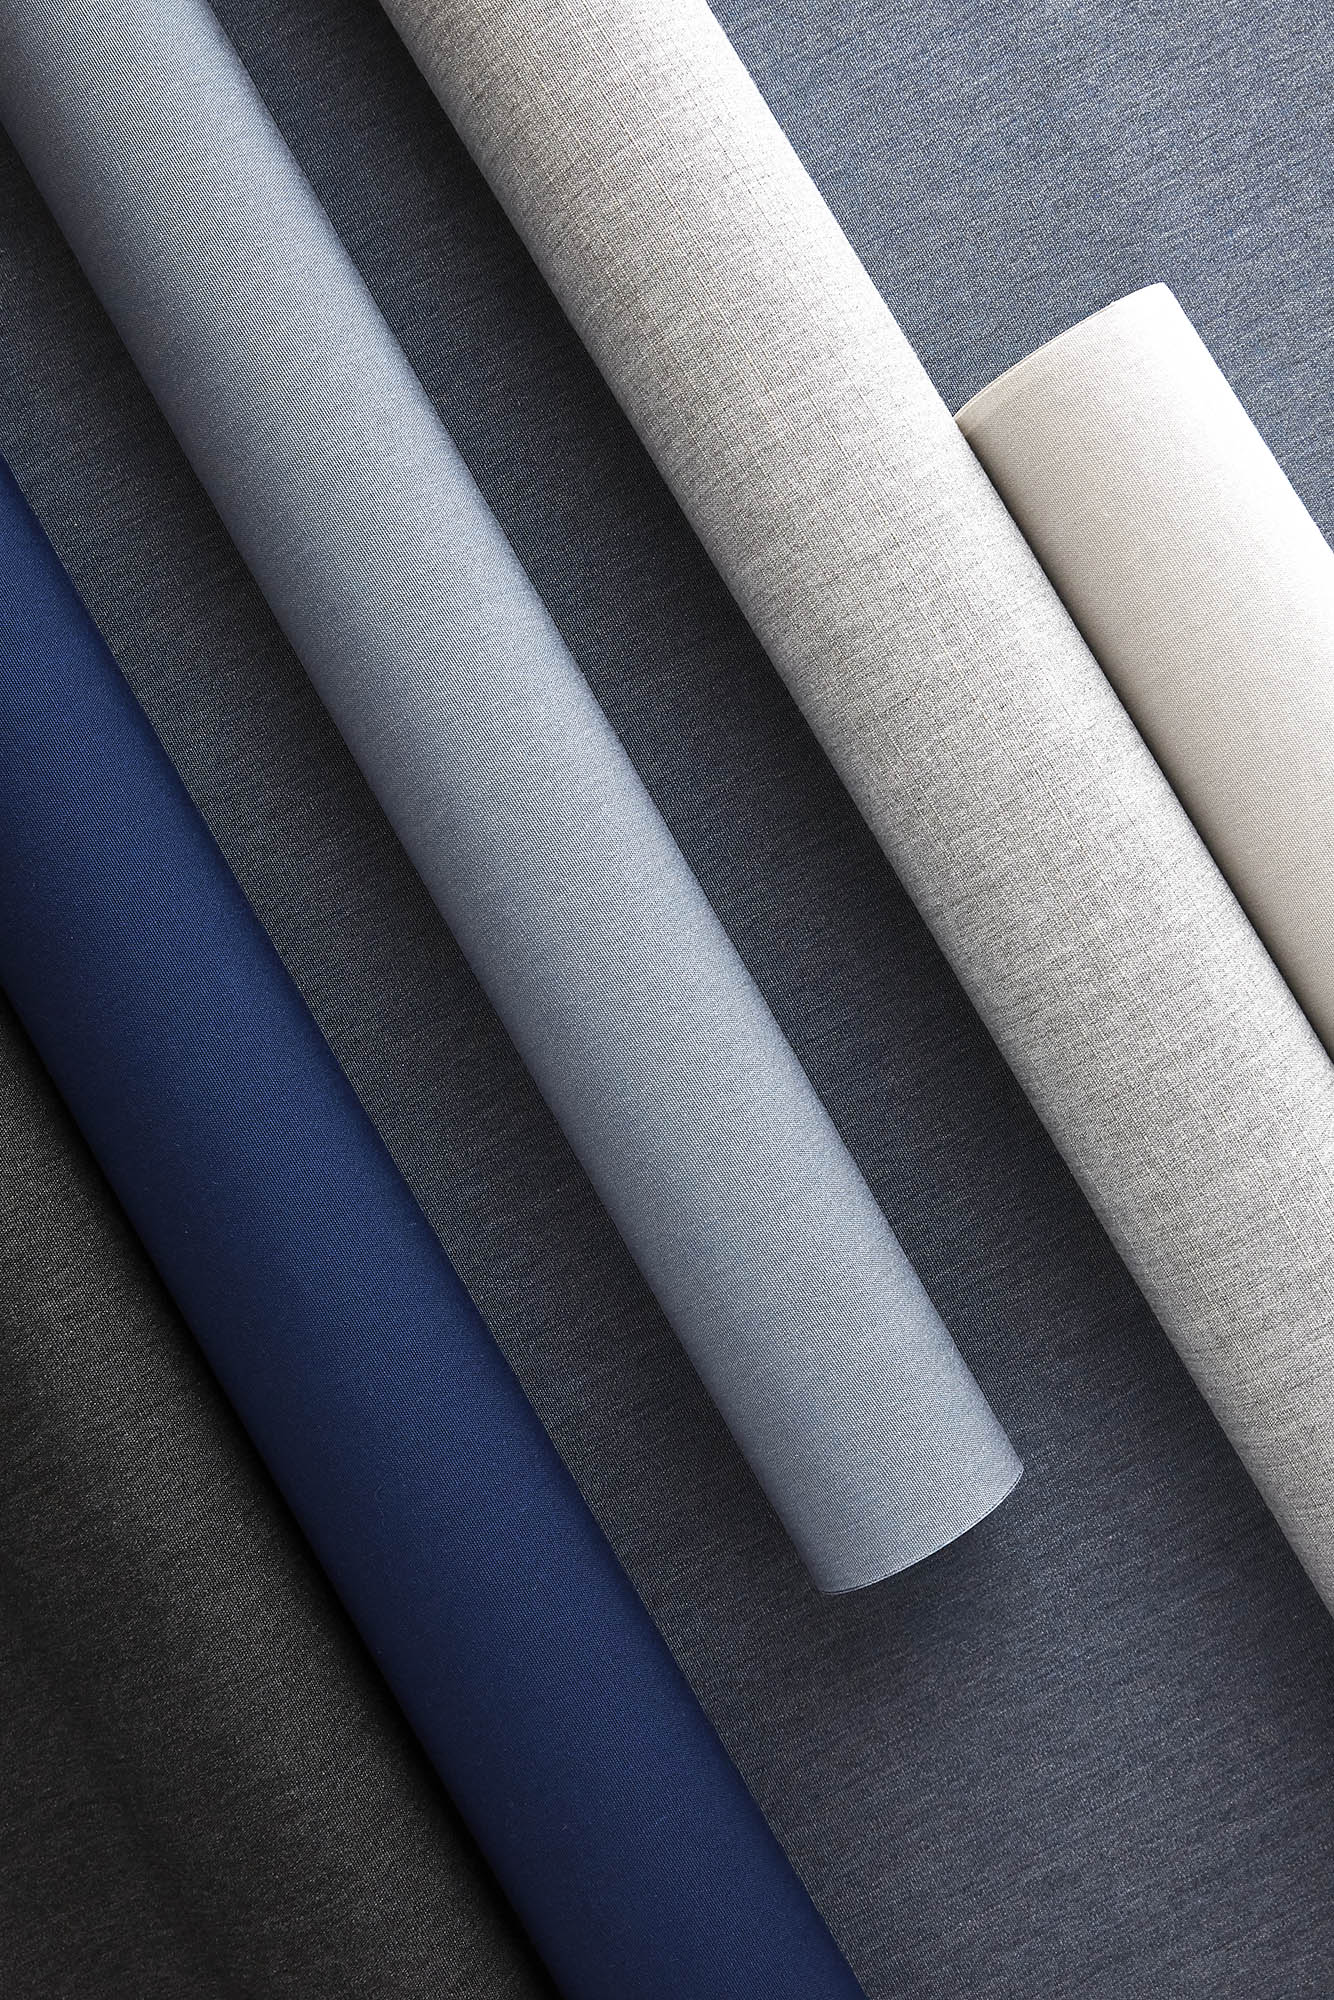 Sunbrella shade fabrics featuring the new solids of Cloud, Midnight and Slate Blue